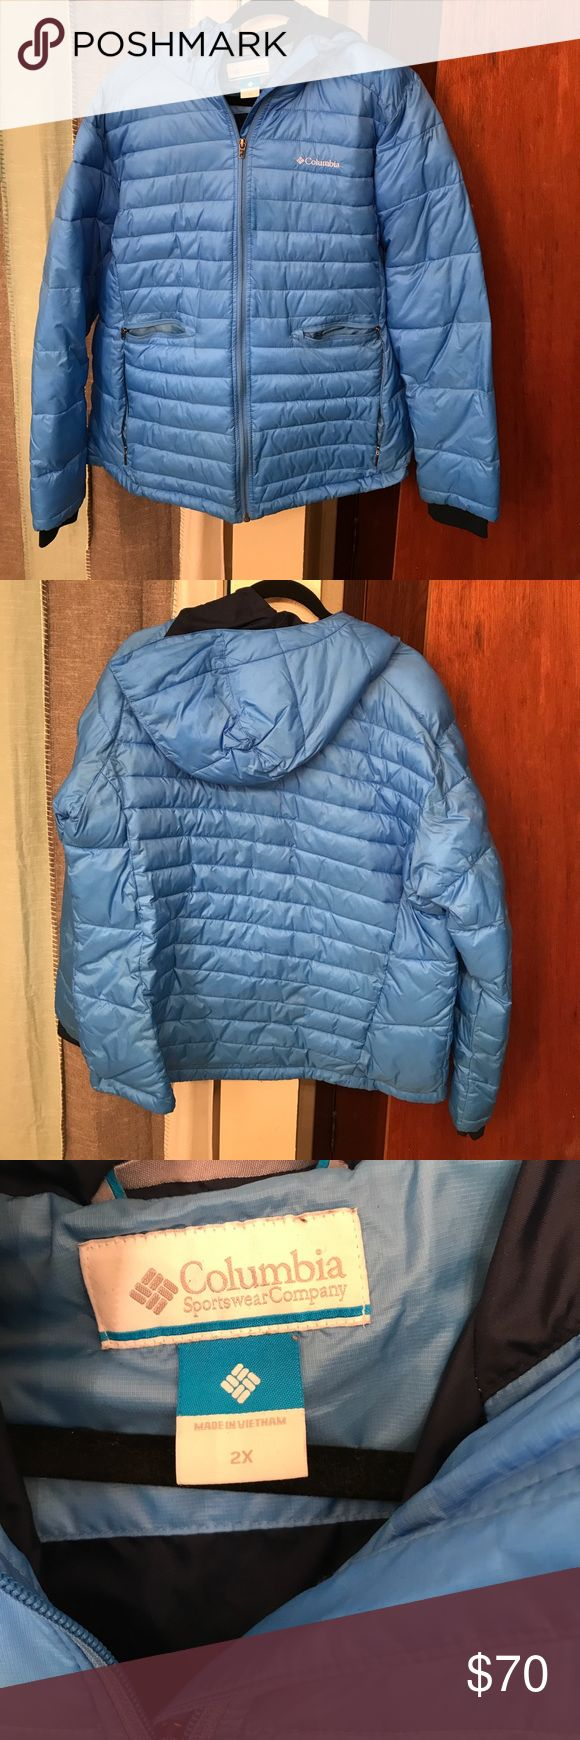 Columbia Sportswear hooded down coat Beautiful light blue, with navy blue interior. Lightweight down. Had a hold, and four outer pockets, as well as inner pocket on left chest. Perfect for ski pass or keeping your phone dry. Only worn twice last winter. Columbia Sportswear Company Jackets & Coats Puffers